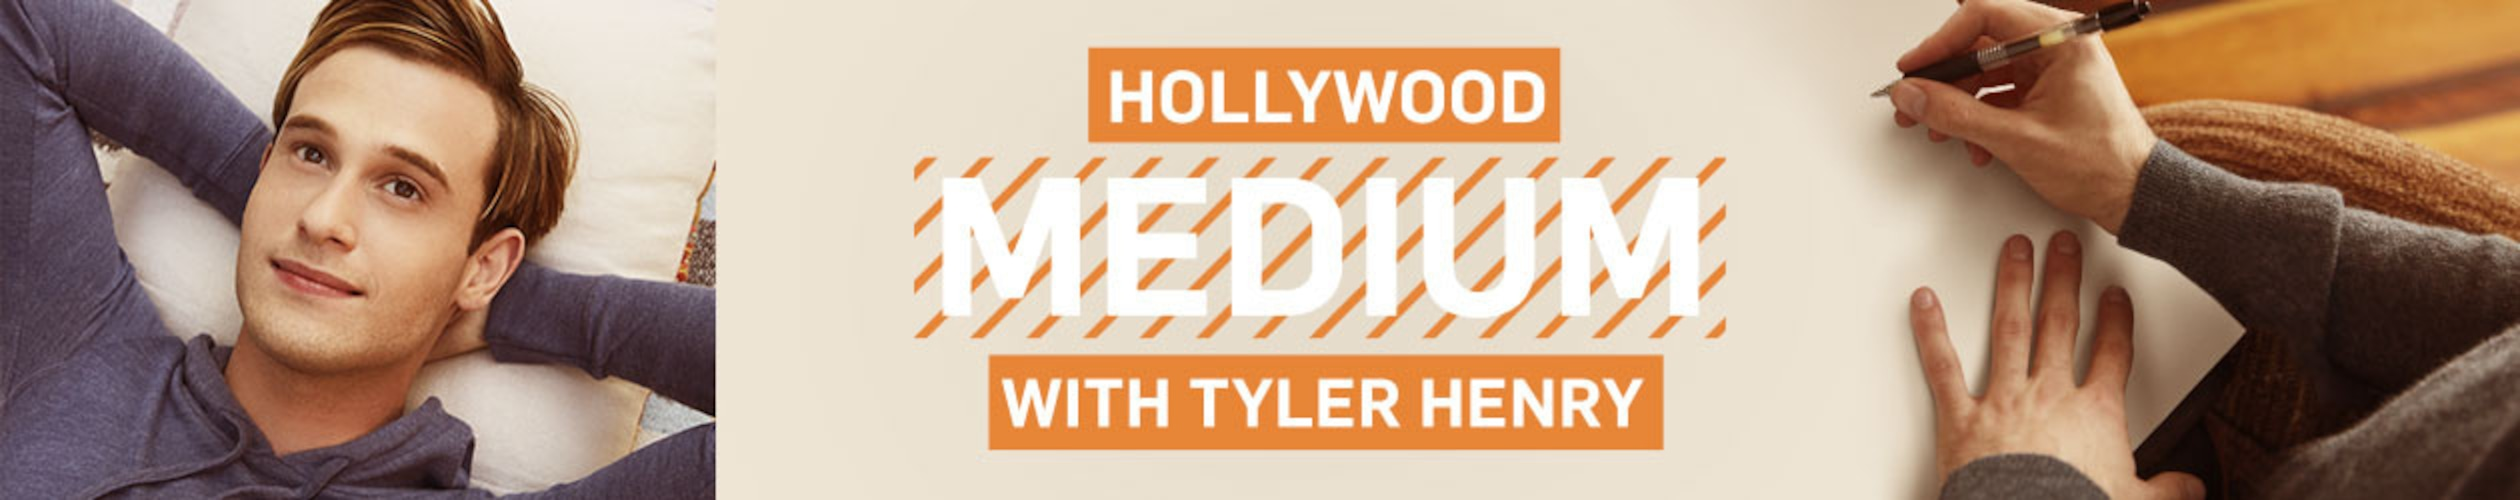 Hollywood Medium With Tyler Henry Season 4 Show Page Assets